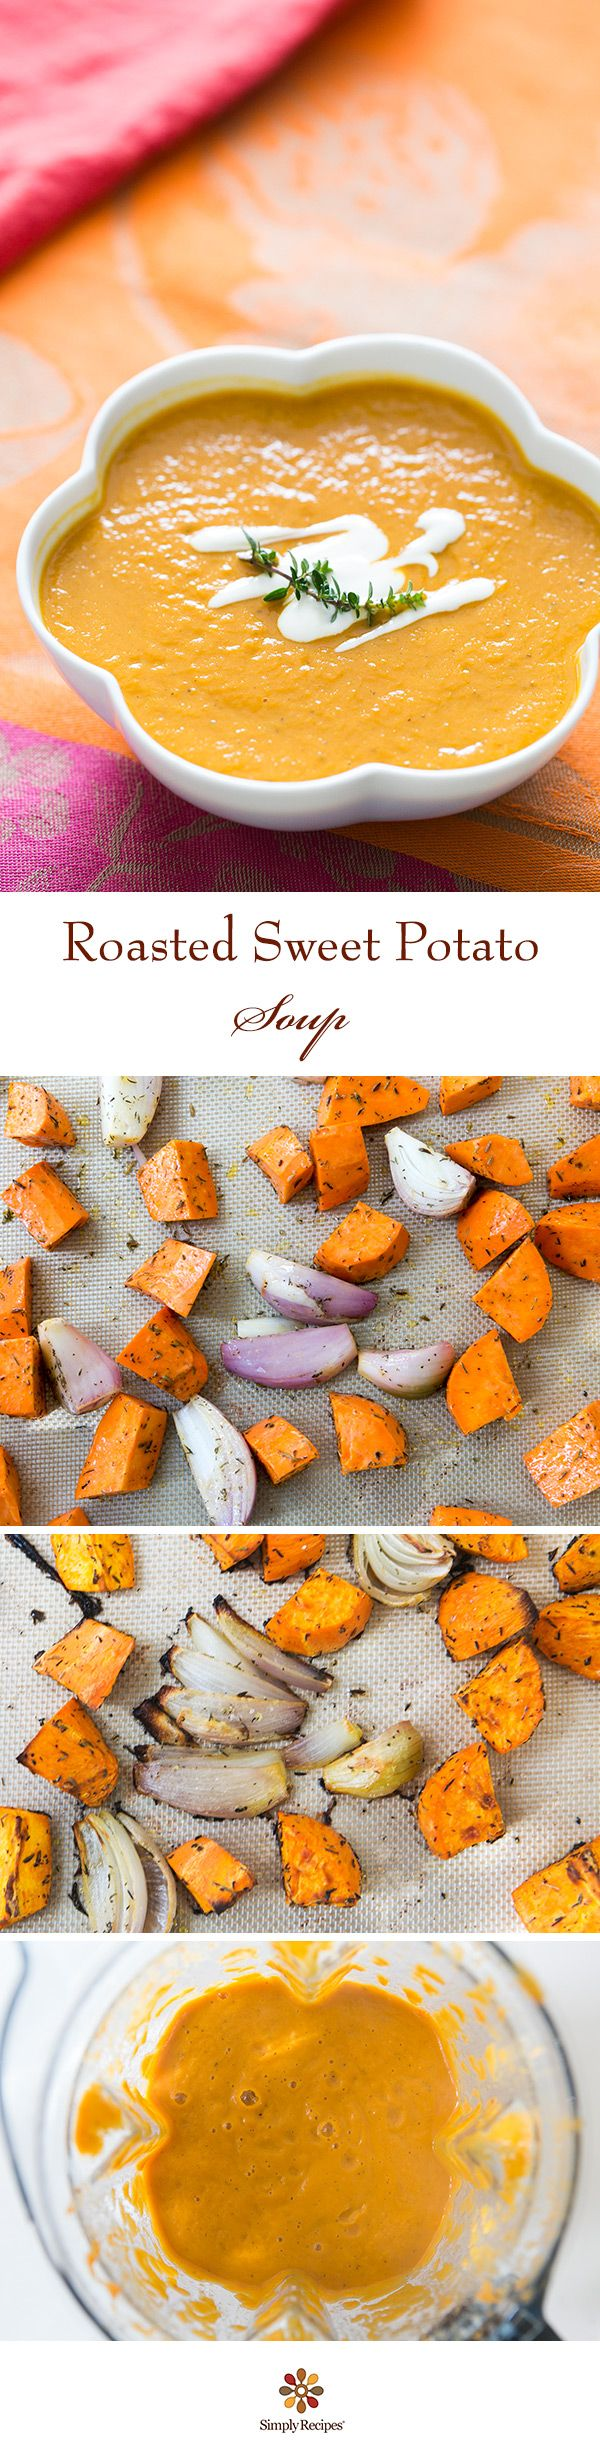 Easy and warming Roasted Sweet Potato Soup recipe with shallots, cumin, thyme, and stock. Swirl in a little yogurt to serve.